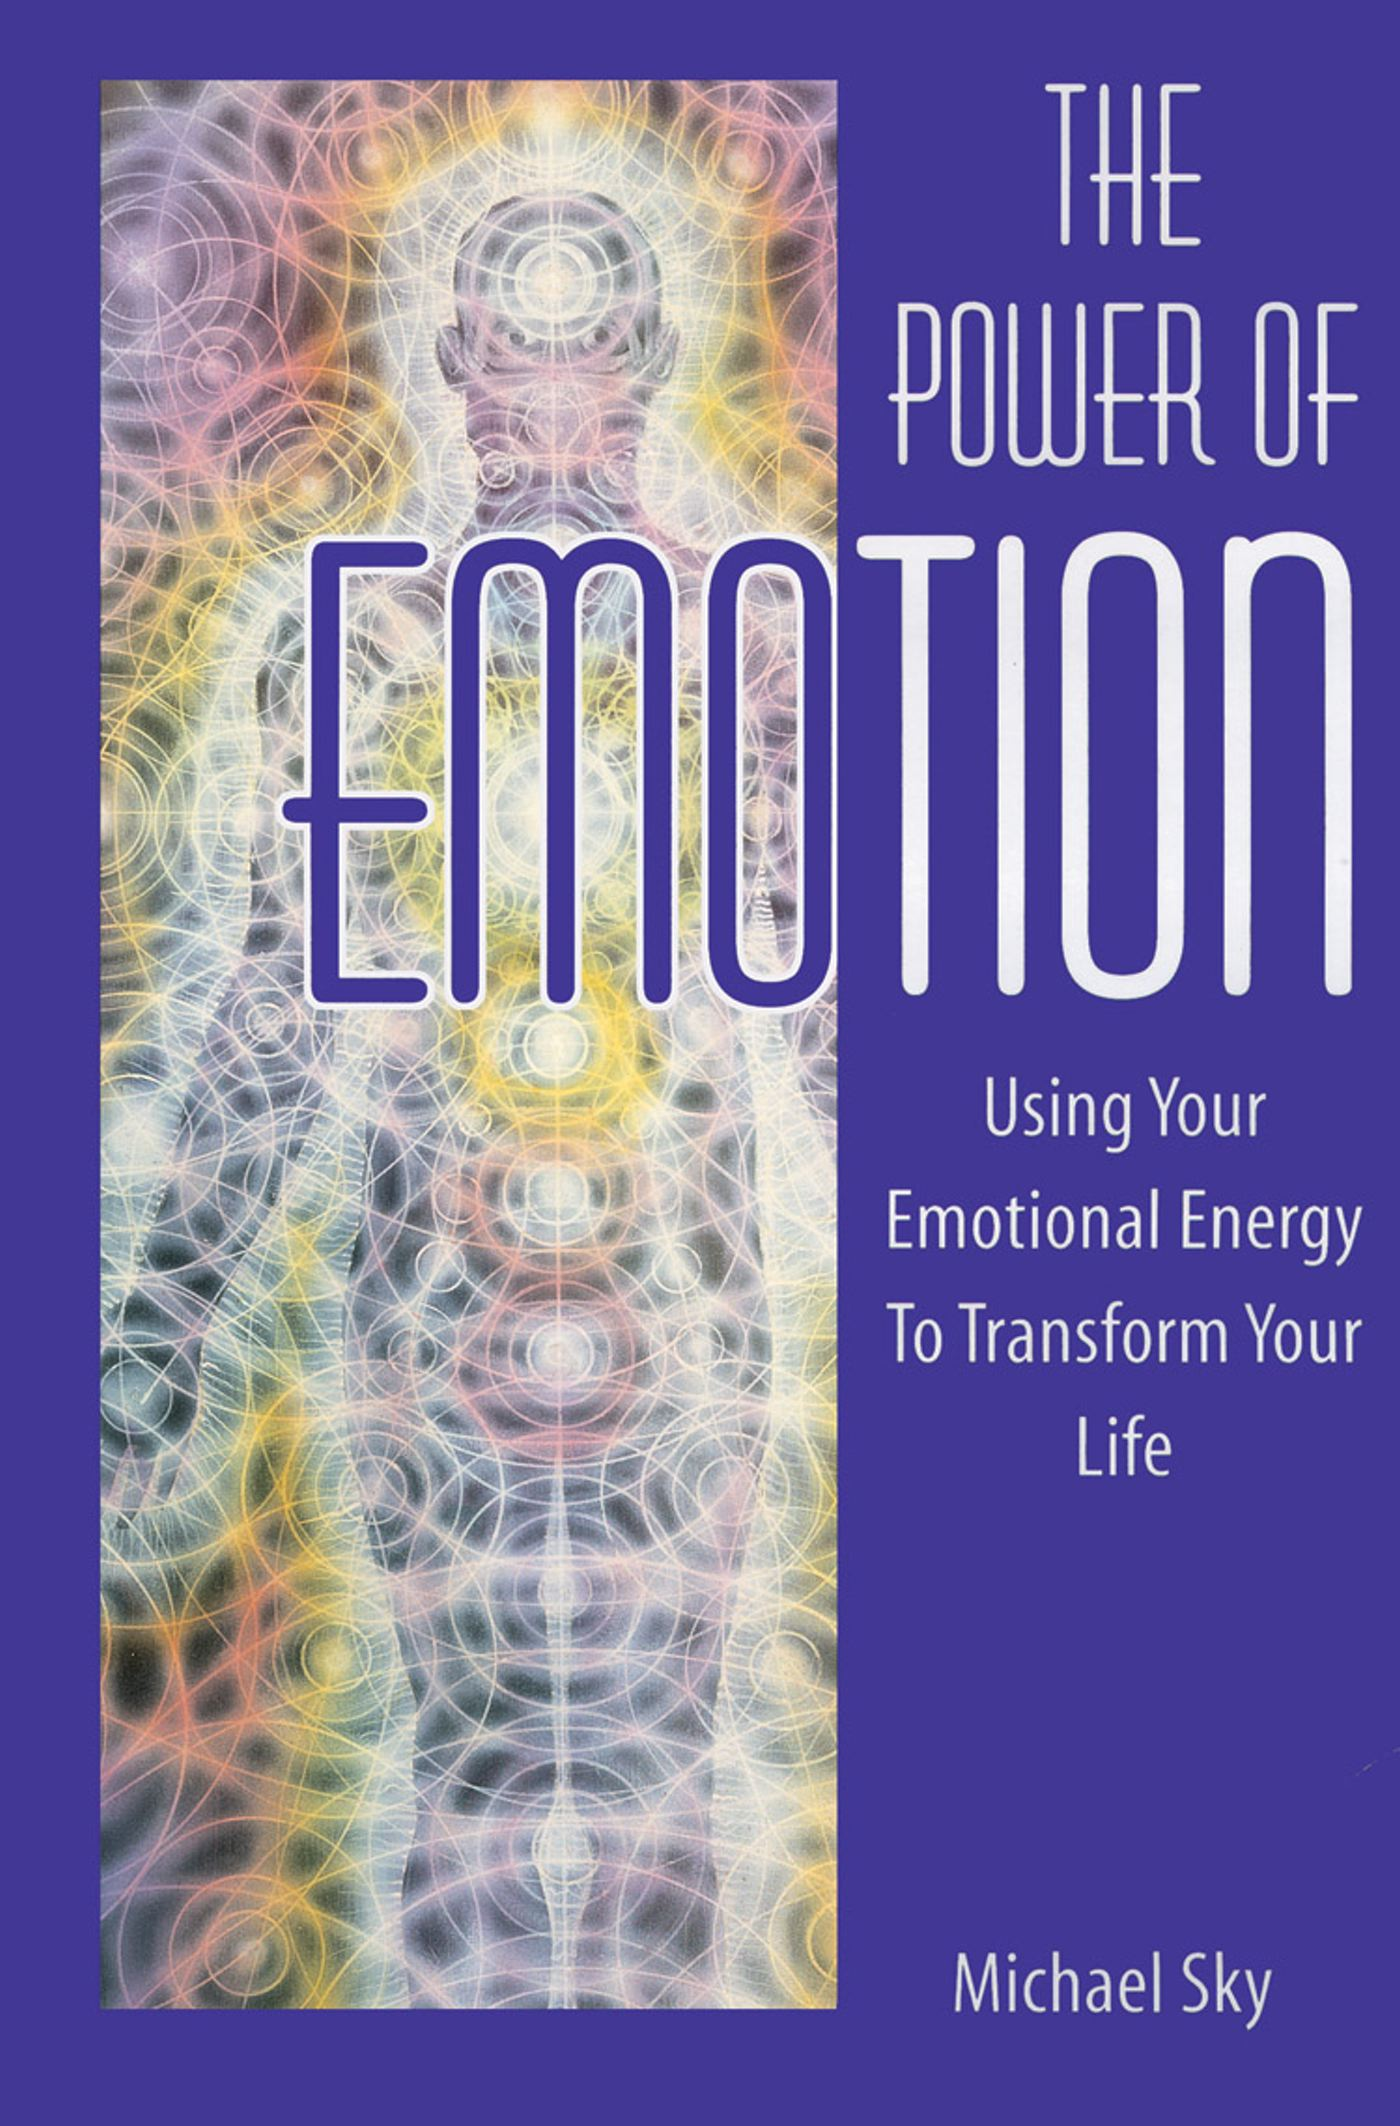 power of emotions Psychologist susan david shares how the way we deal with our emotions shapes everything that matters: our actions, careers, relationships, health and happiness in this deeply moving, humorous and potentially life-changing talk, she challenges a culture that prizes positivity over emotional truth and discusses the powerful strategies of emotional agility.